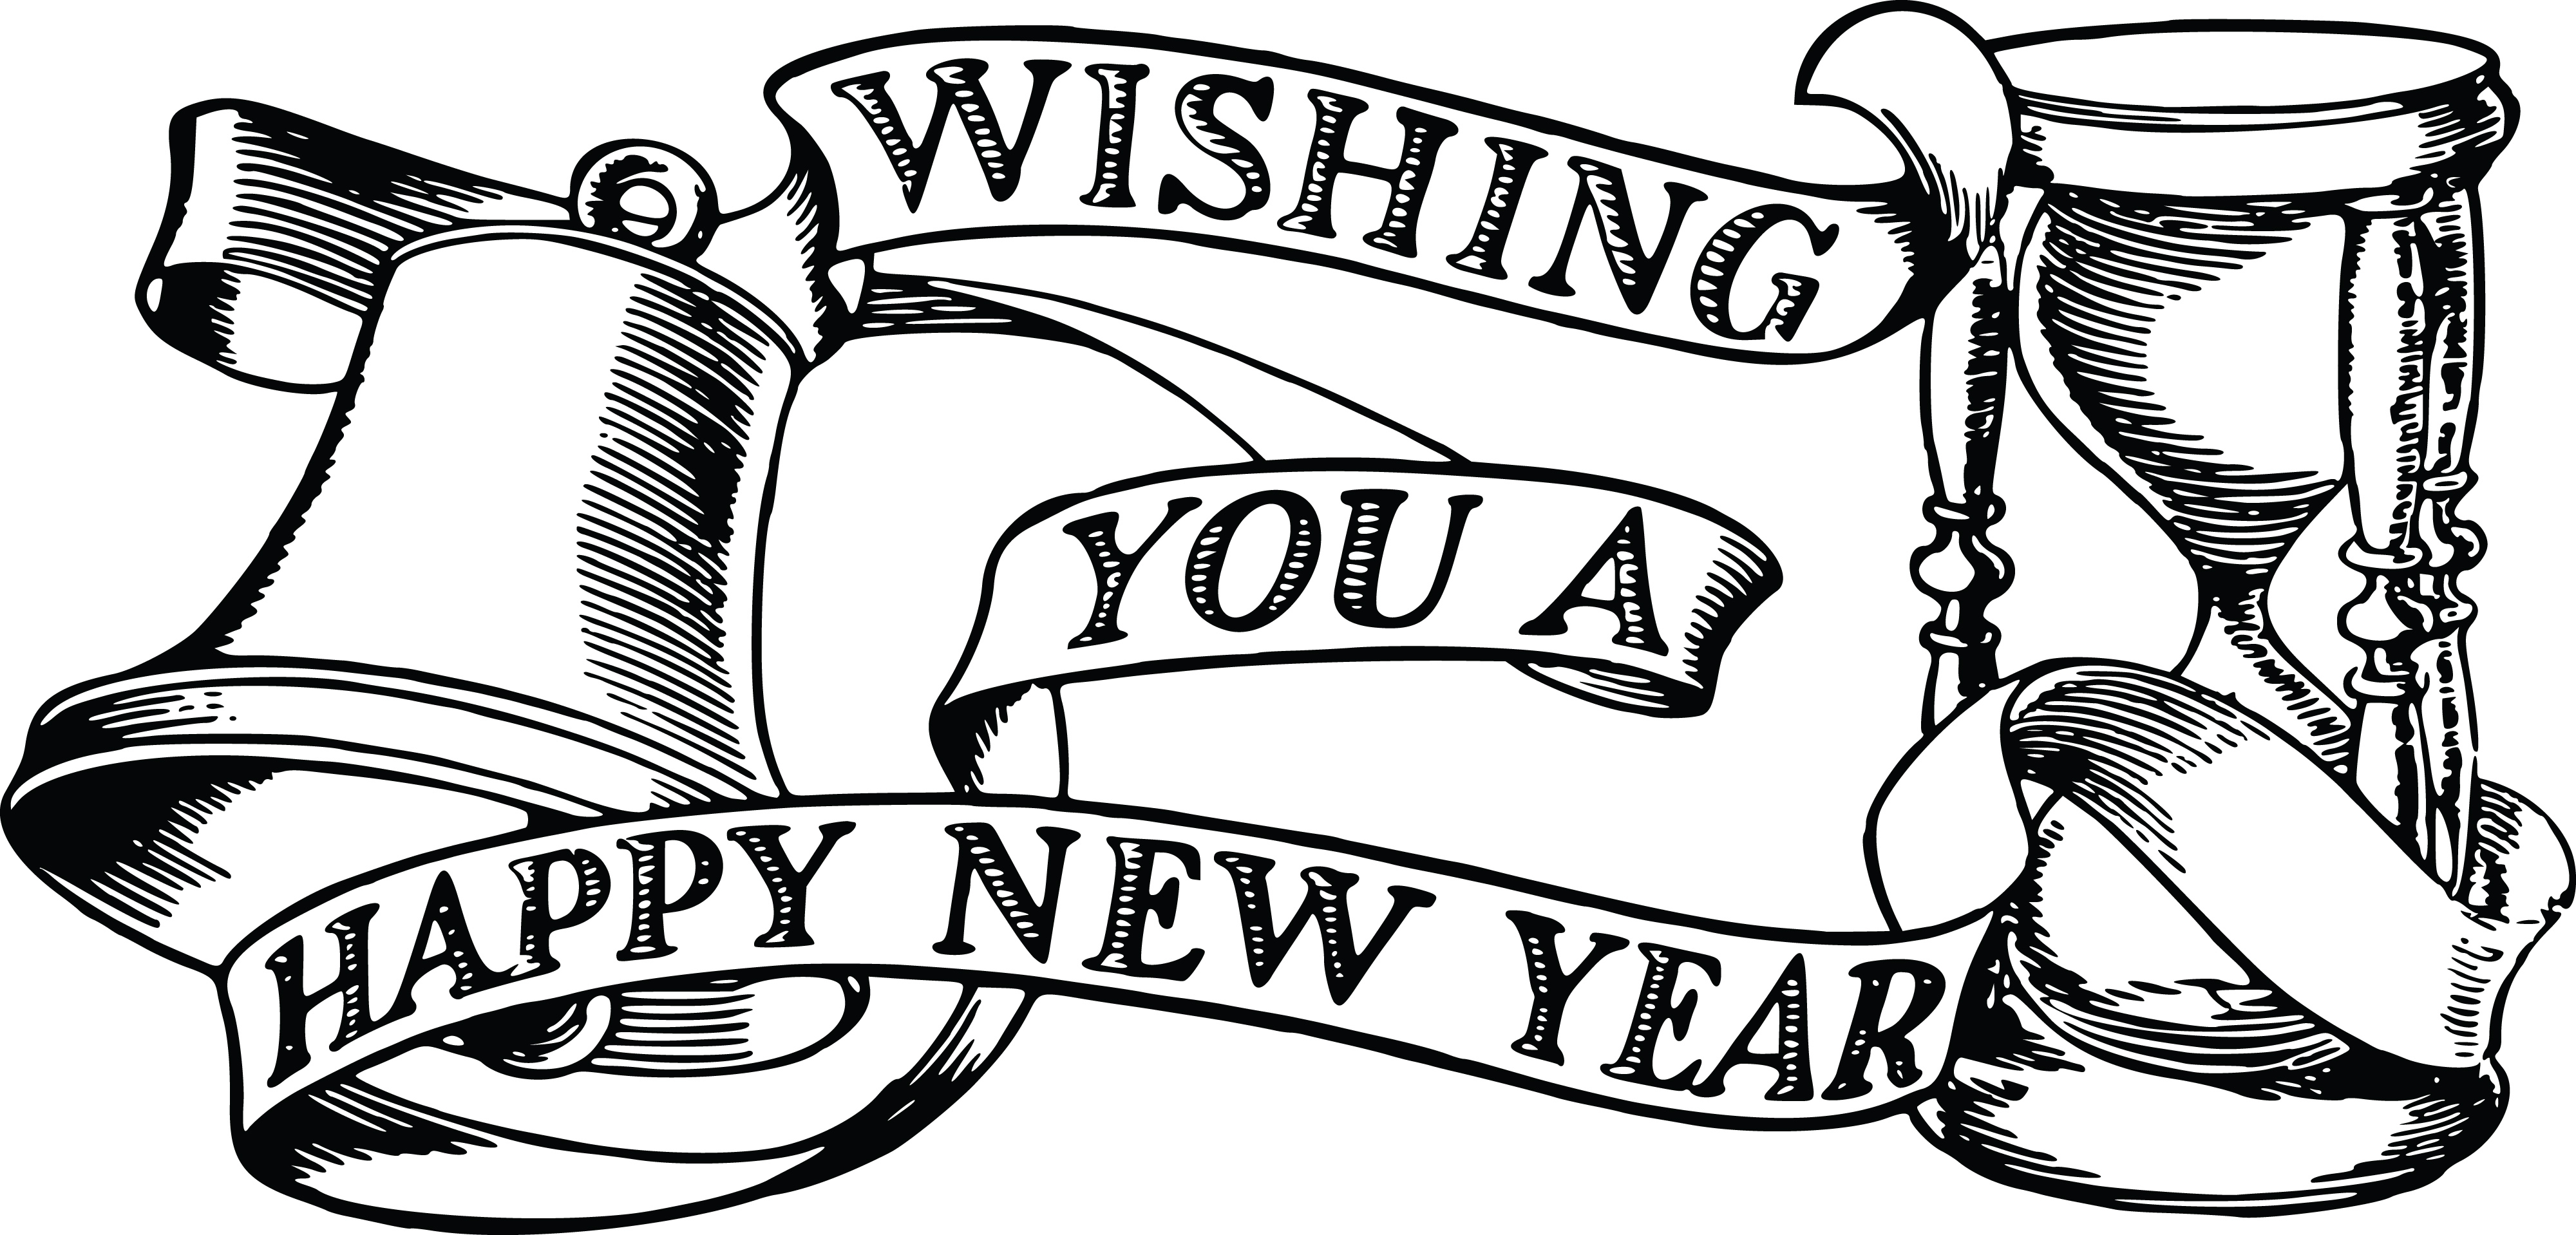 Free Clipart Of A bell hourglass and happy new year banner.